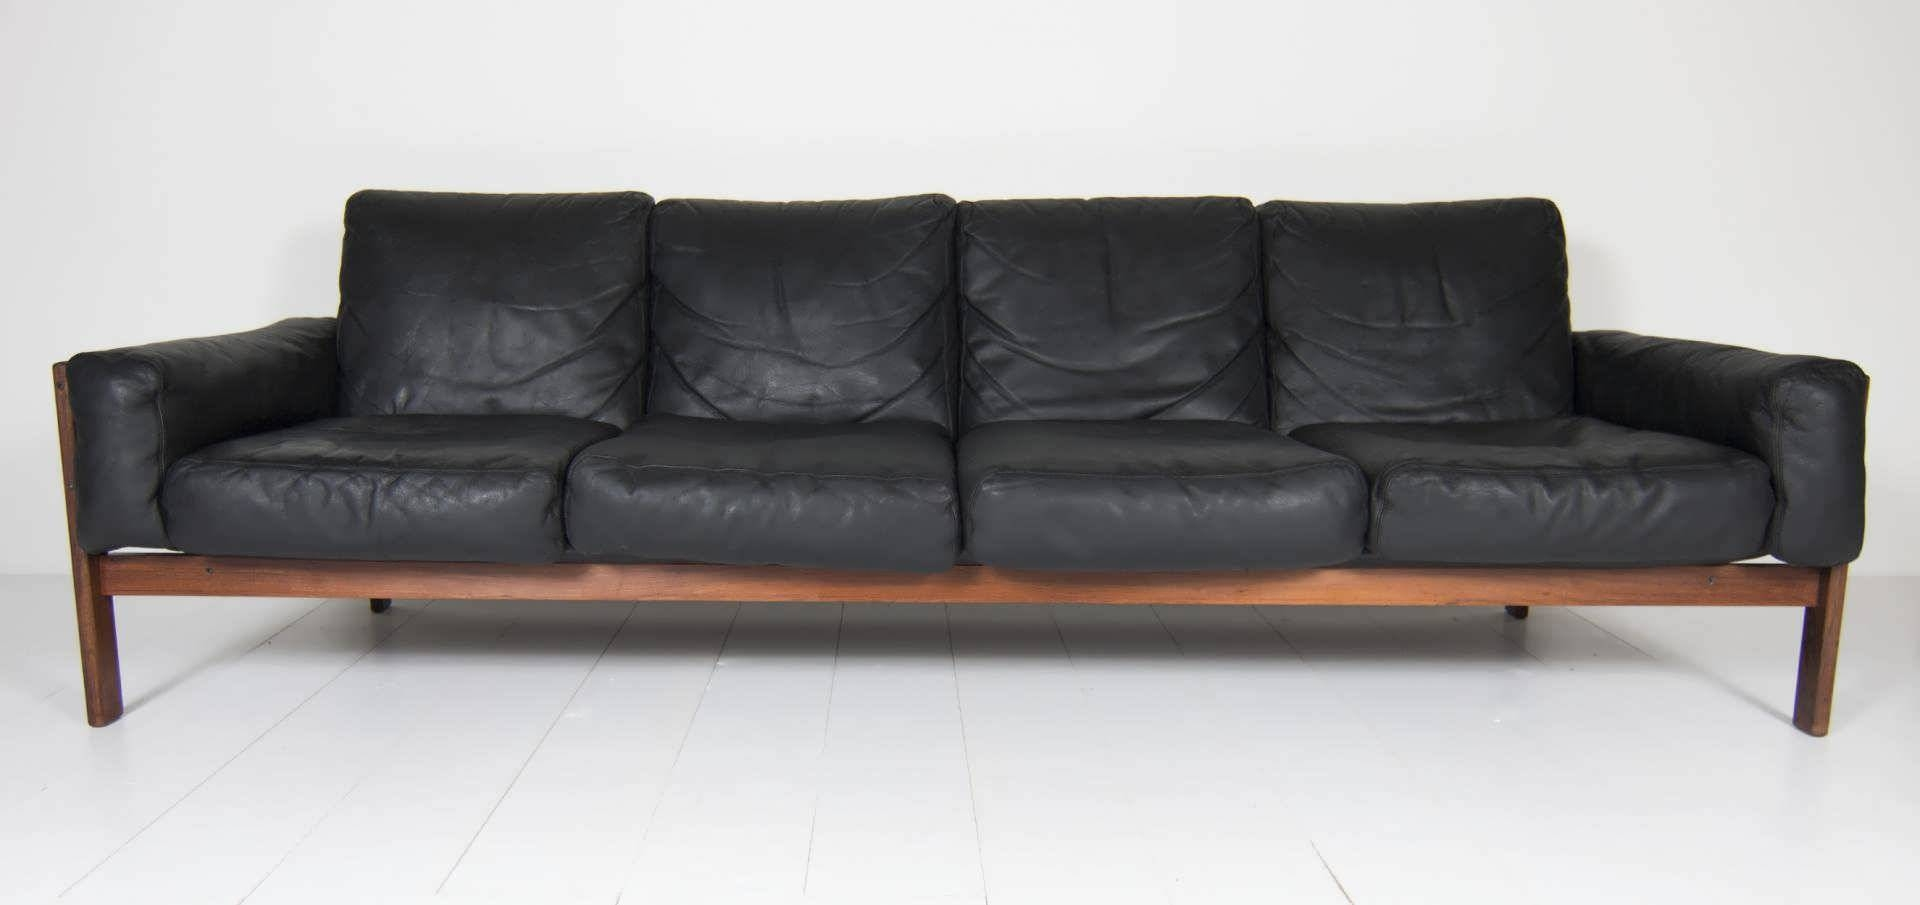 Tufted Black Sofa Savile Black Leather Tufted Sectional Sofa Medium Size Of Sofacouch Prices